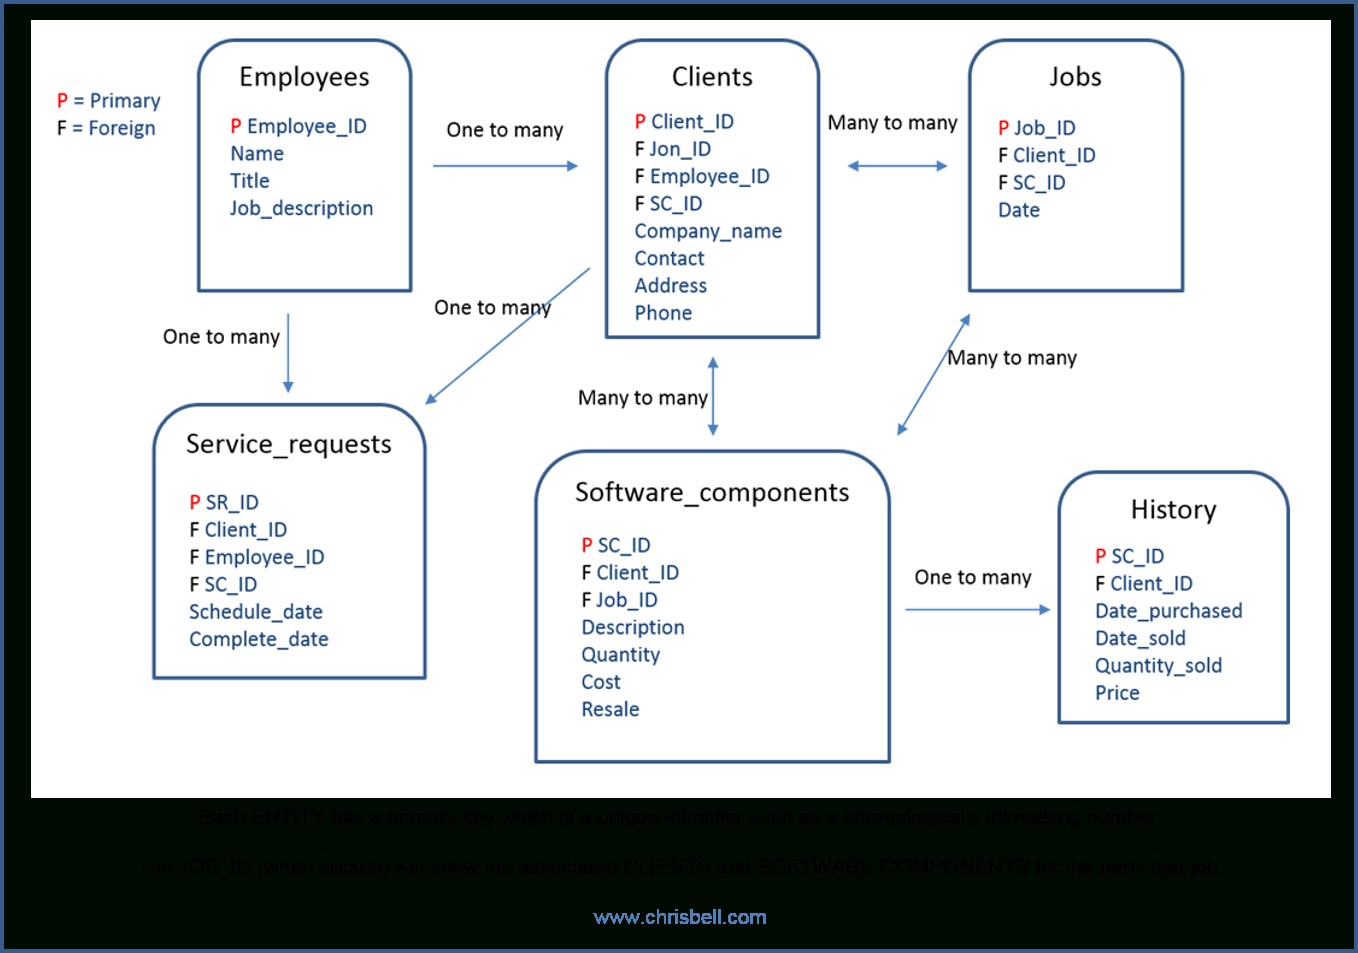 Database Management System (Dbms) Relationships | Chris Bell pertaining to Database Diagram One To Many